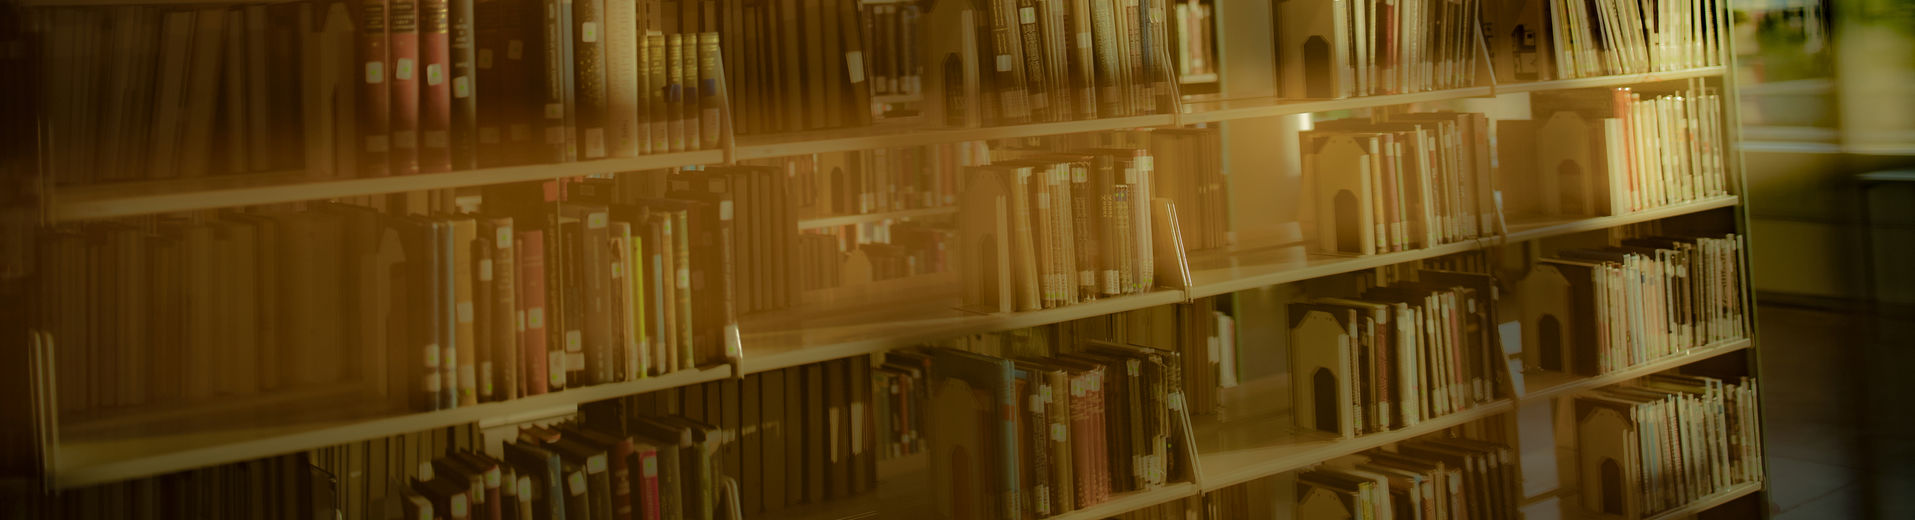 abstract image of bookshelves at Charles Library.